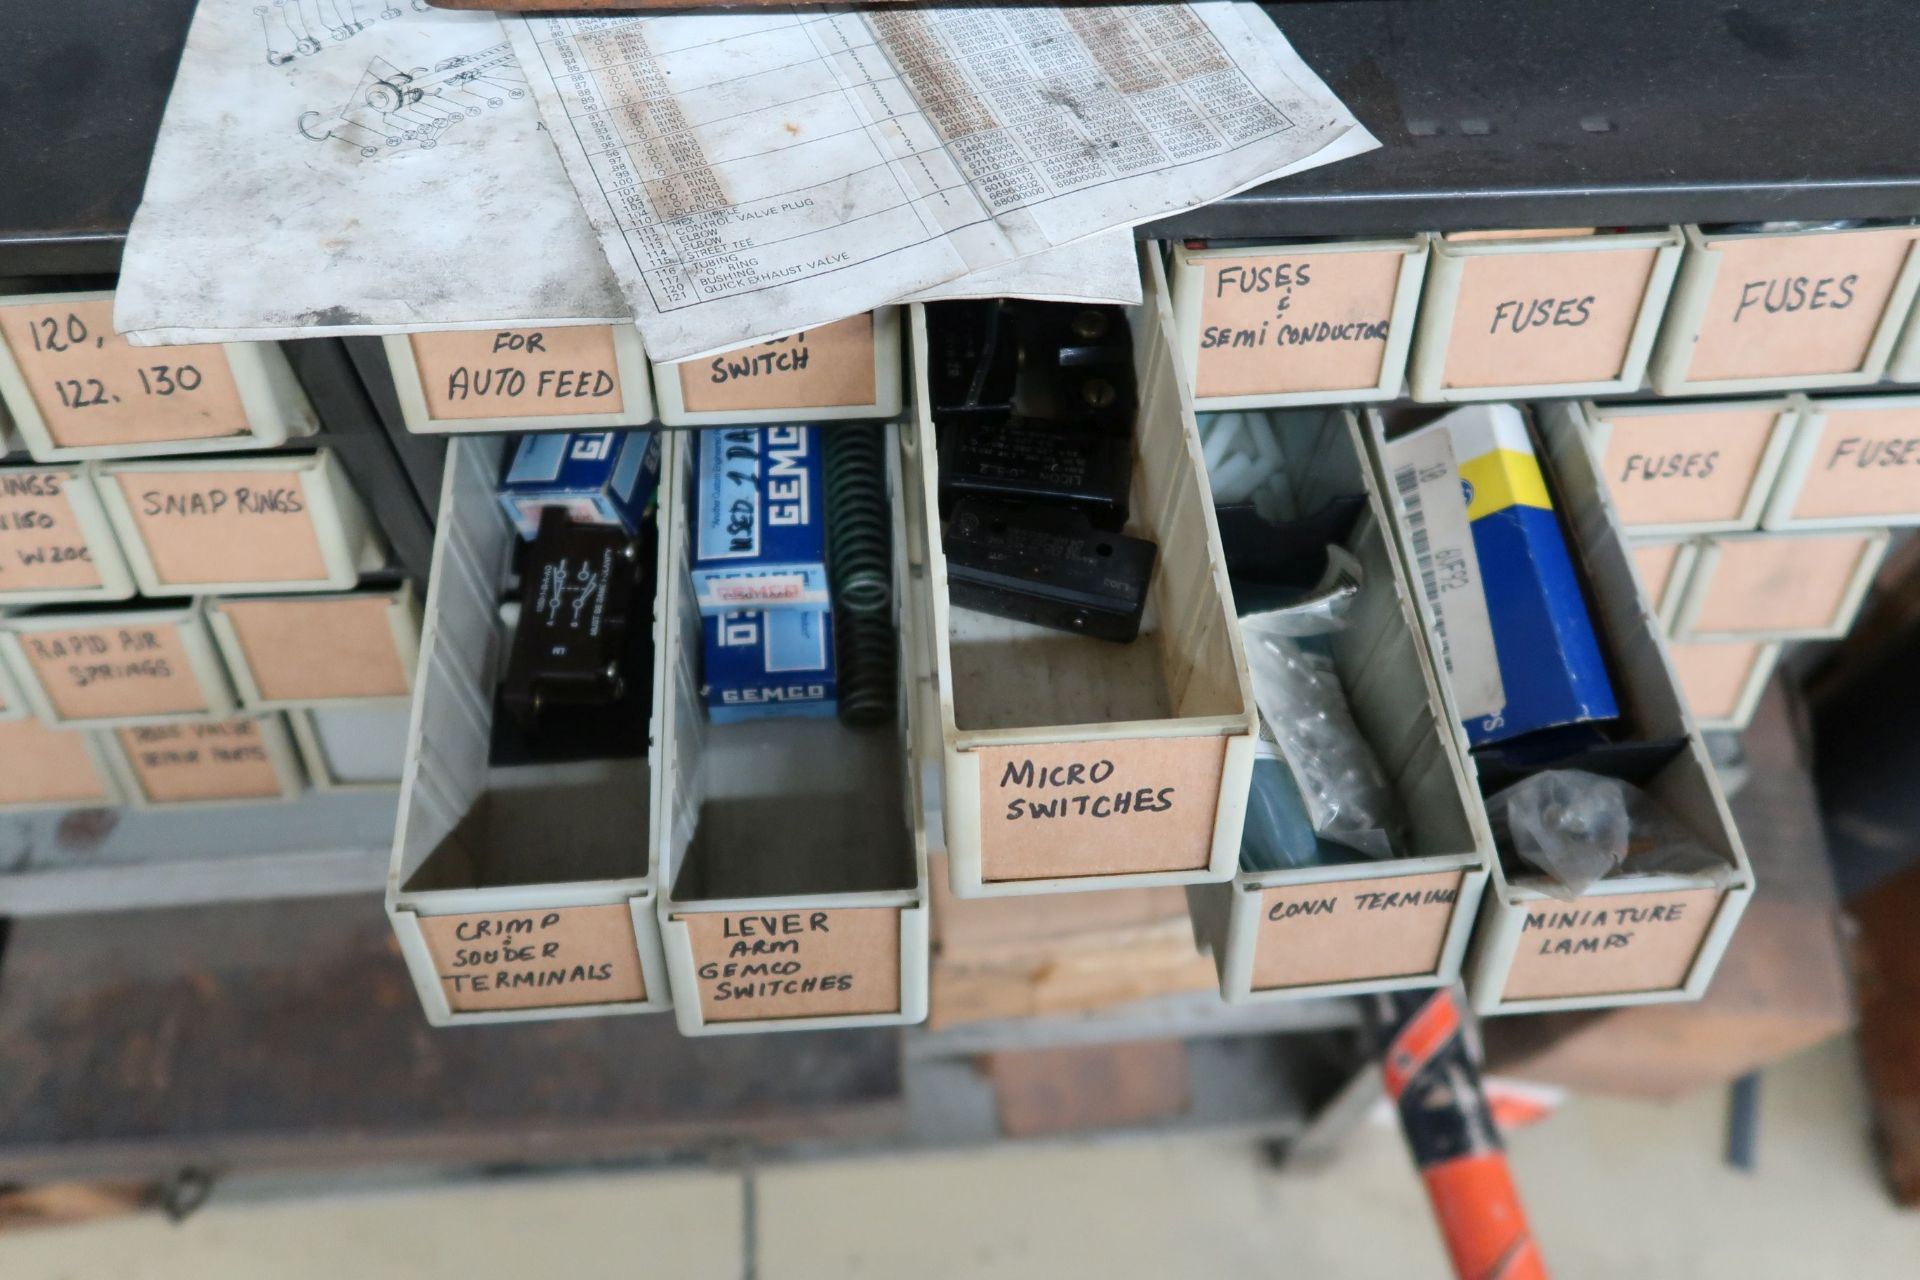 (LOT) CONTENTS OF RACK AGAINST WALL INCLUDING HARDWARE, TOOLS, ELECTRICAL PARTS (NO SOUND SYSTEM) - Image 4 of 6